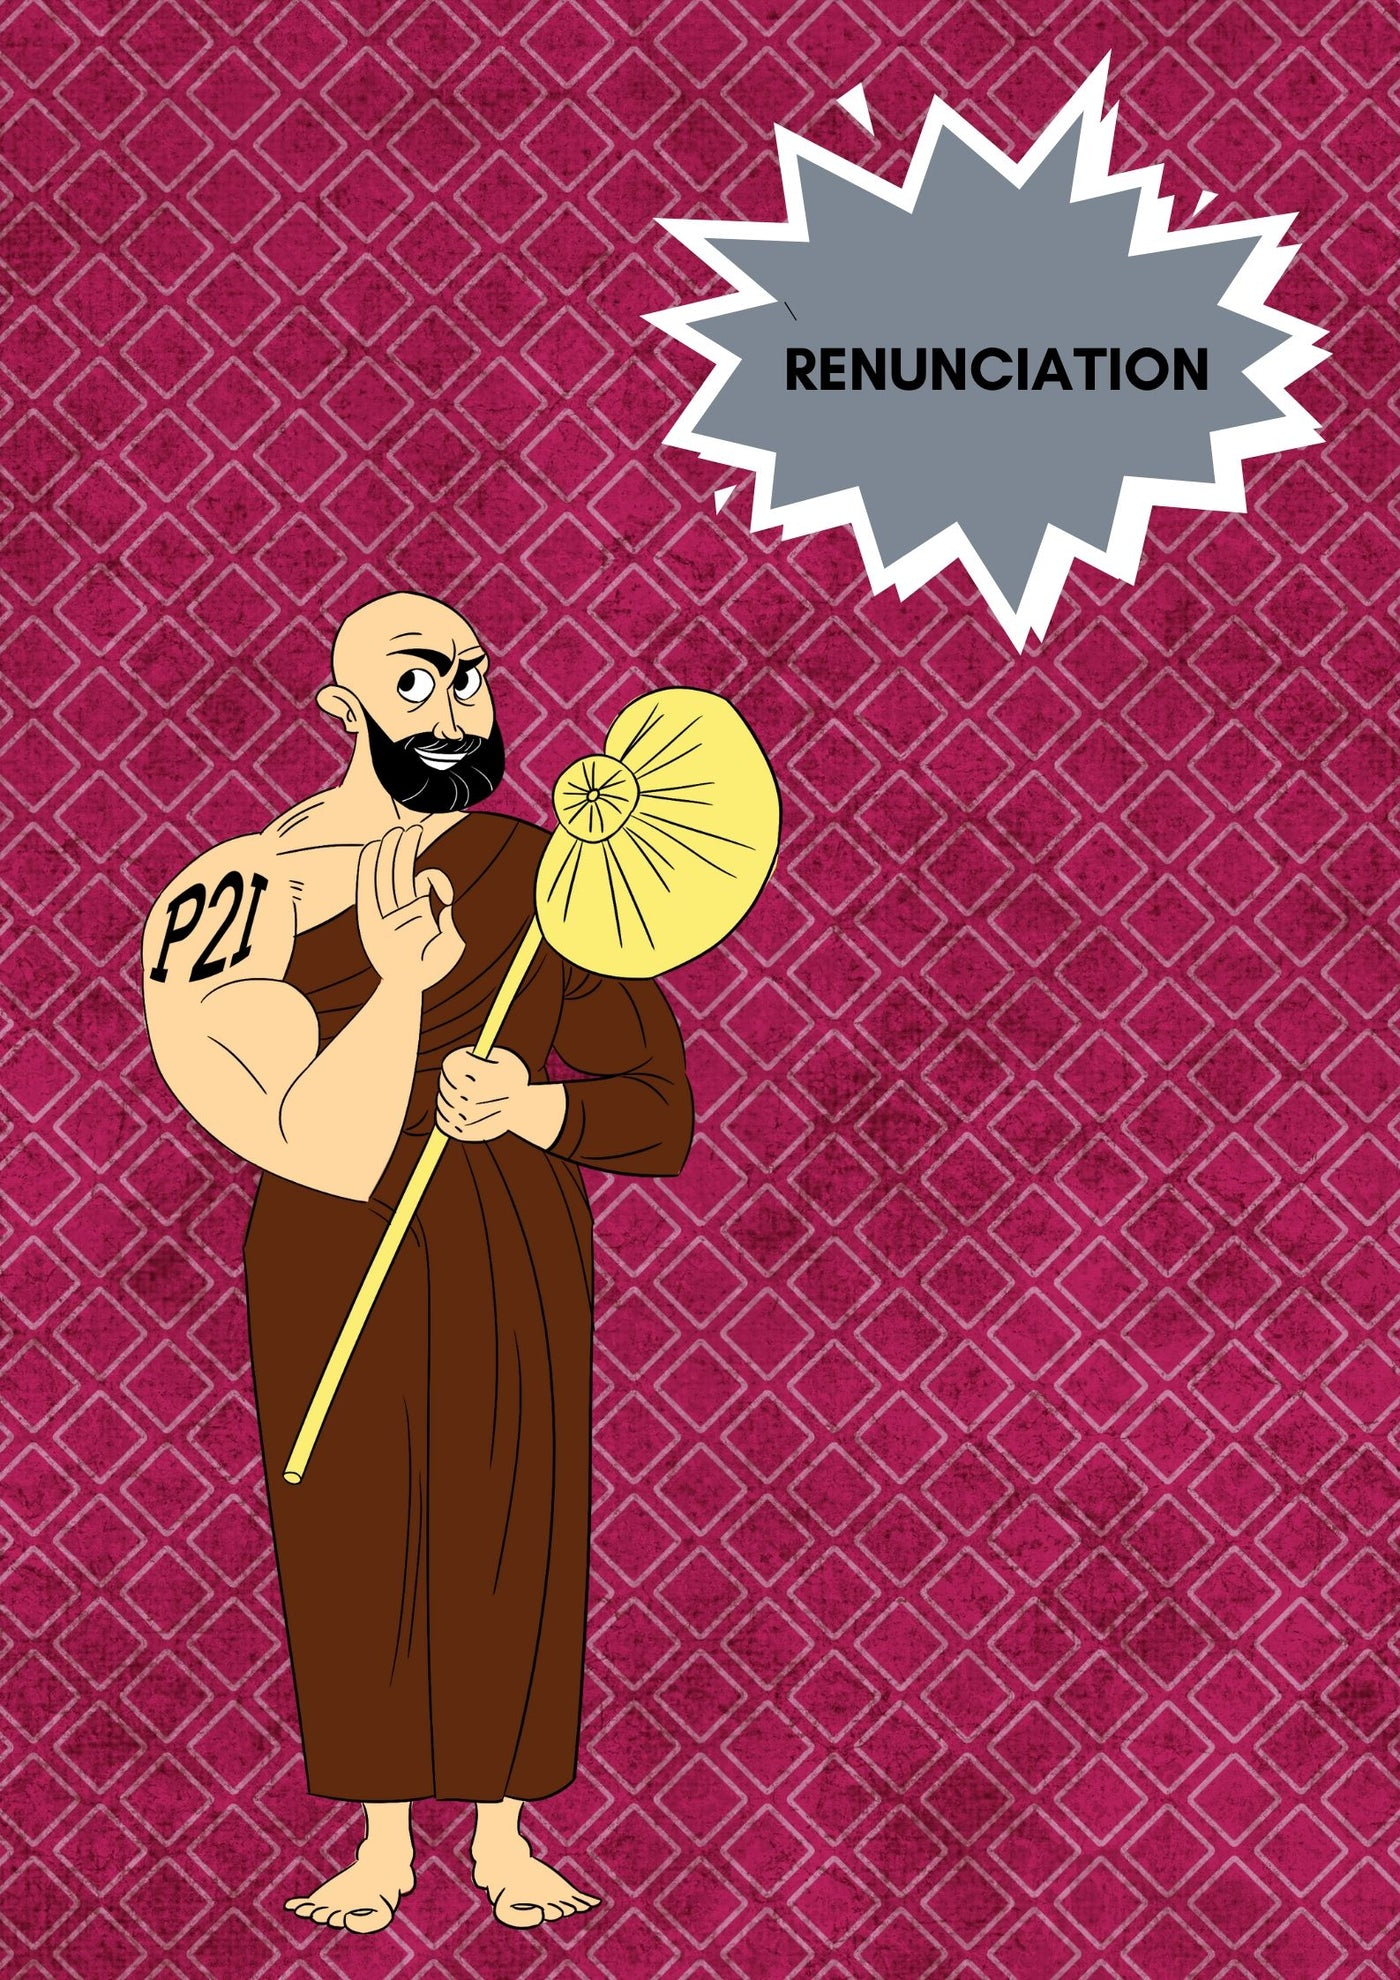 Renunciation to reach enlightenment